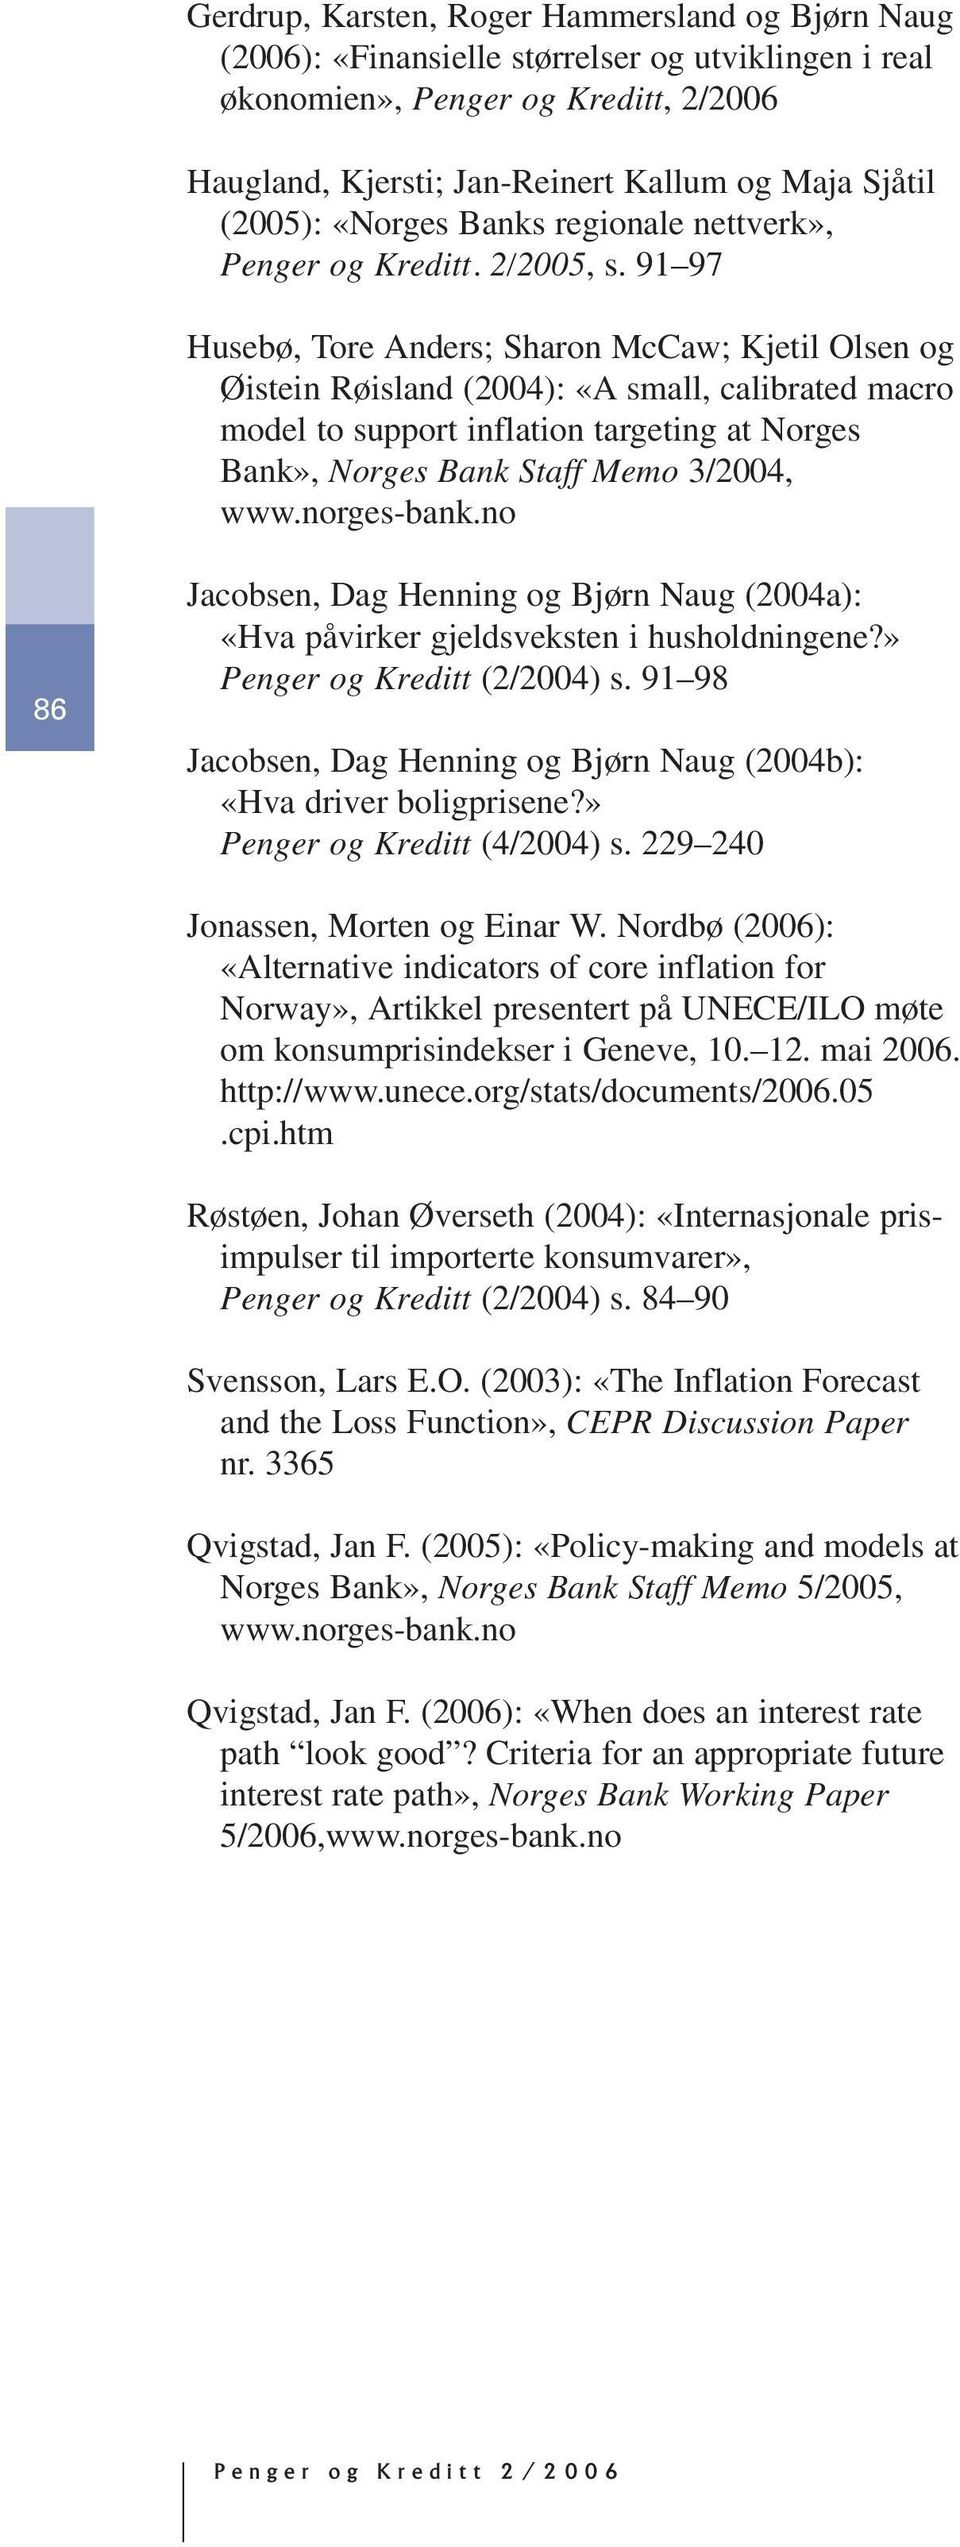 91 97 Husebø, Tore Anders; Sharon McCaw; Kjetil Olsen og Øistein Røisland (24): «A small, calibrated macro model to support inflation targeting at Norges Bank», Norges Bank Staff Memo 3/24, www.